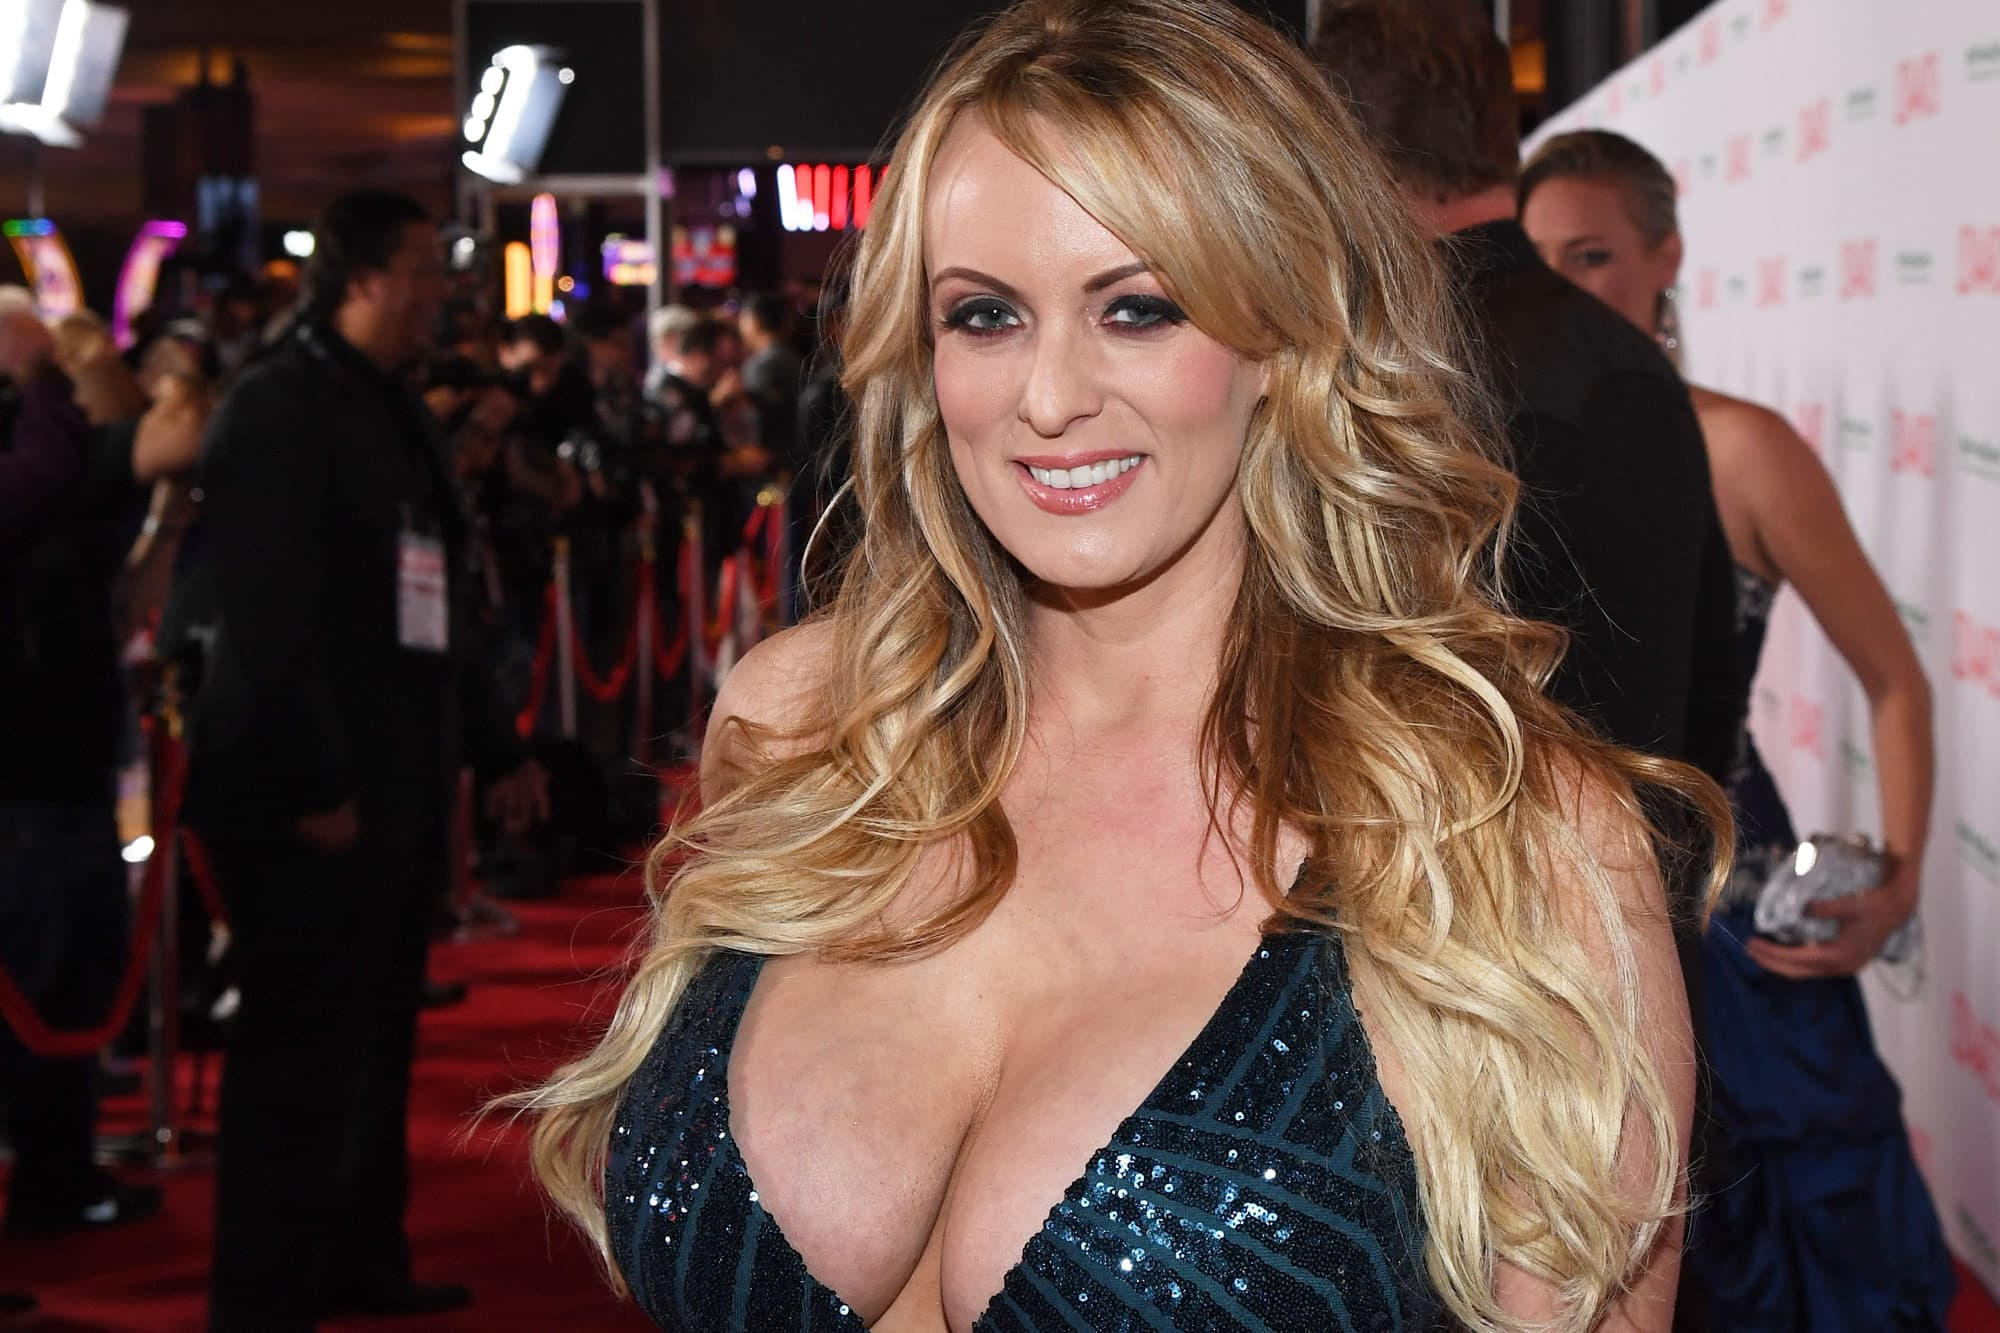 Trump's lawyer seeks $20 million in damages from porn star Stormy Daniels